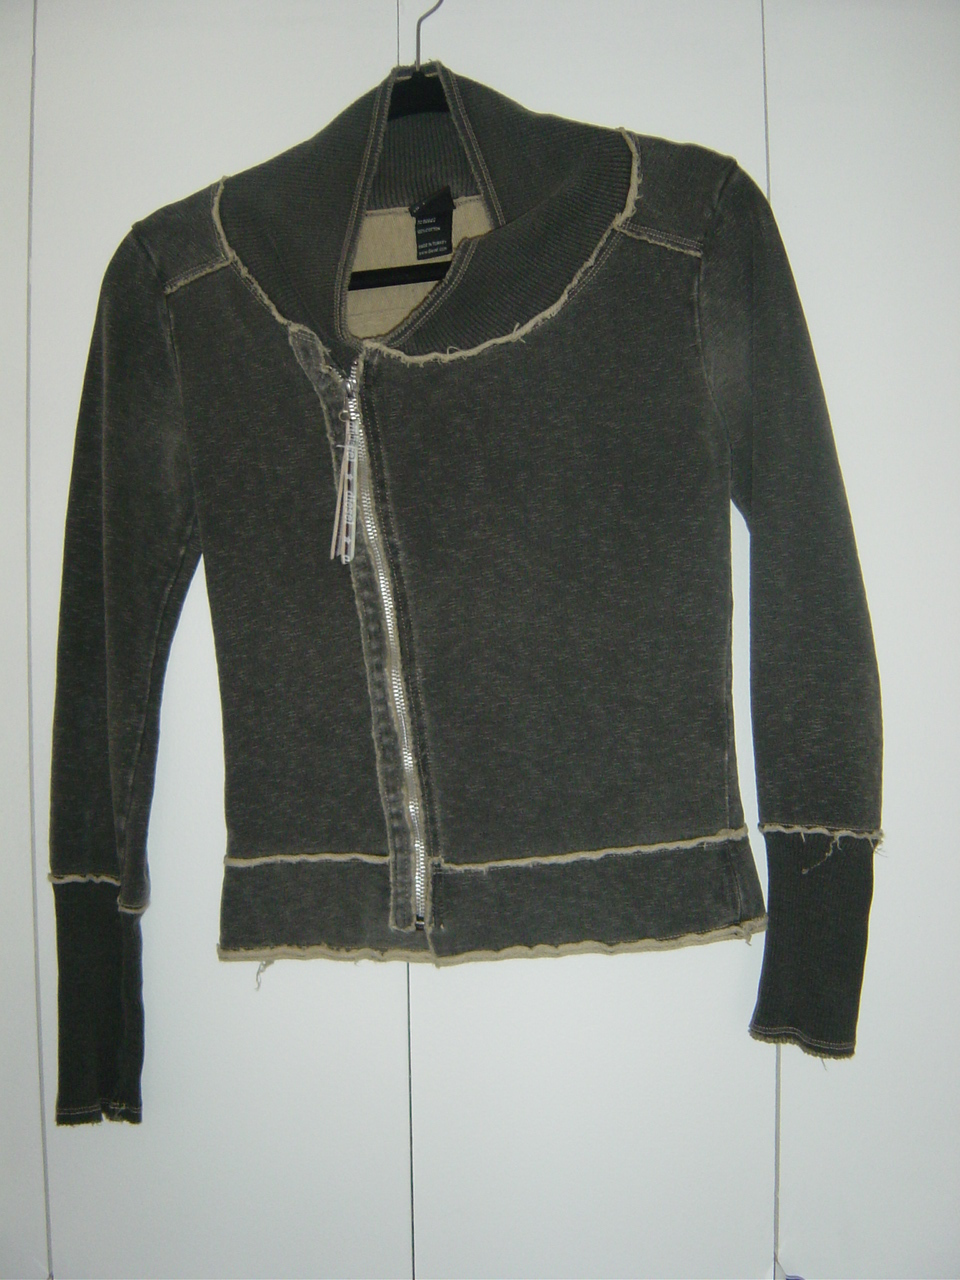 Diesel Grey Zipped Top (Size: Small) GUC